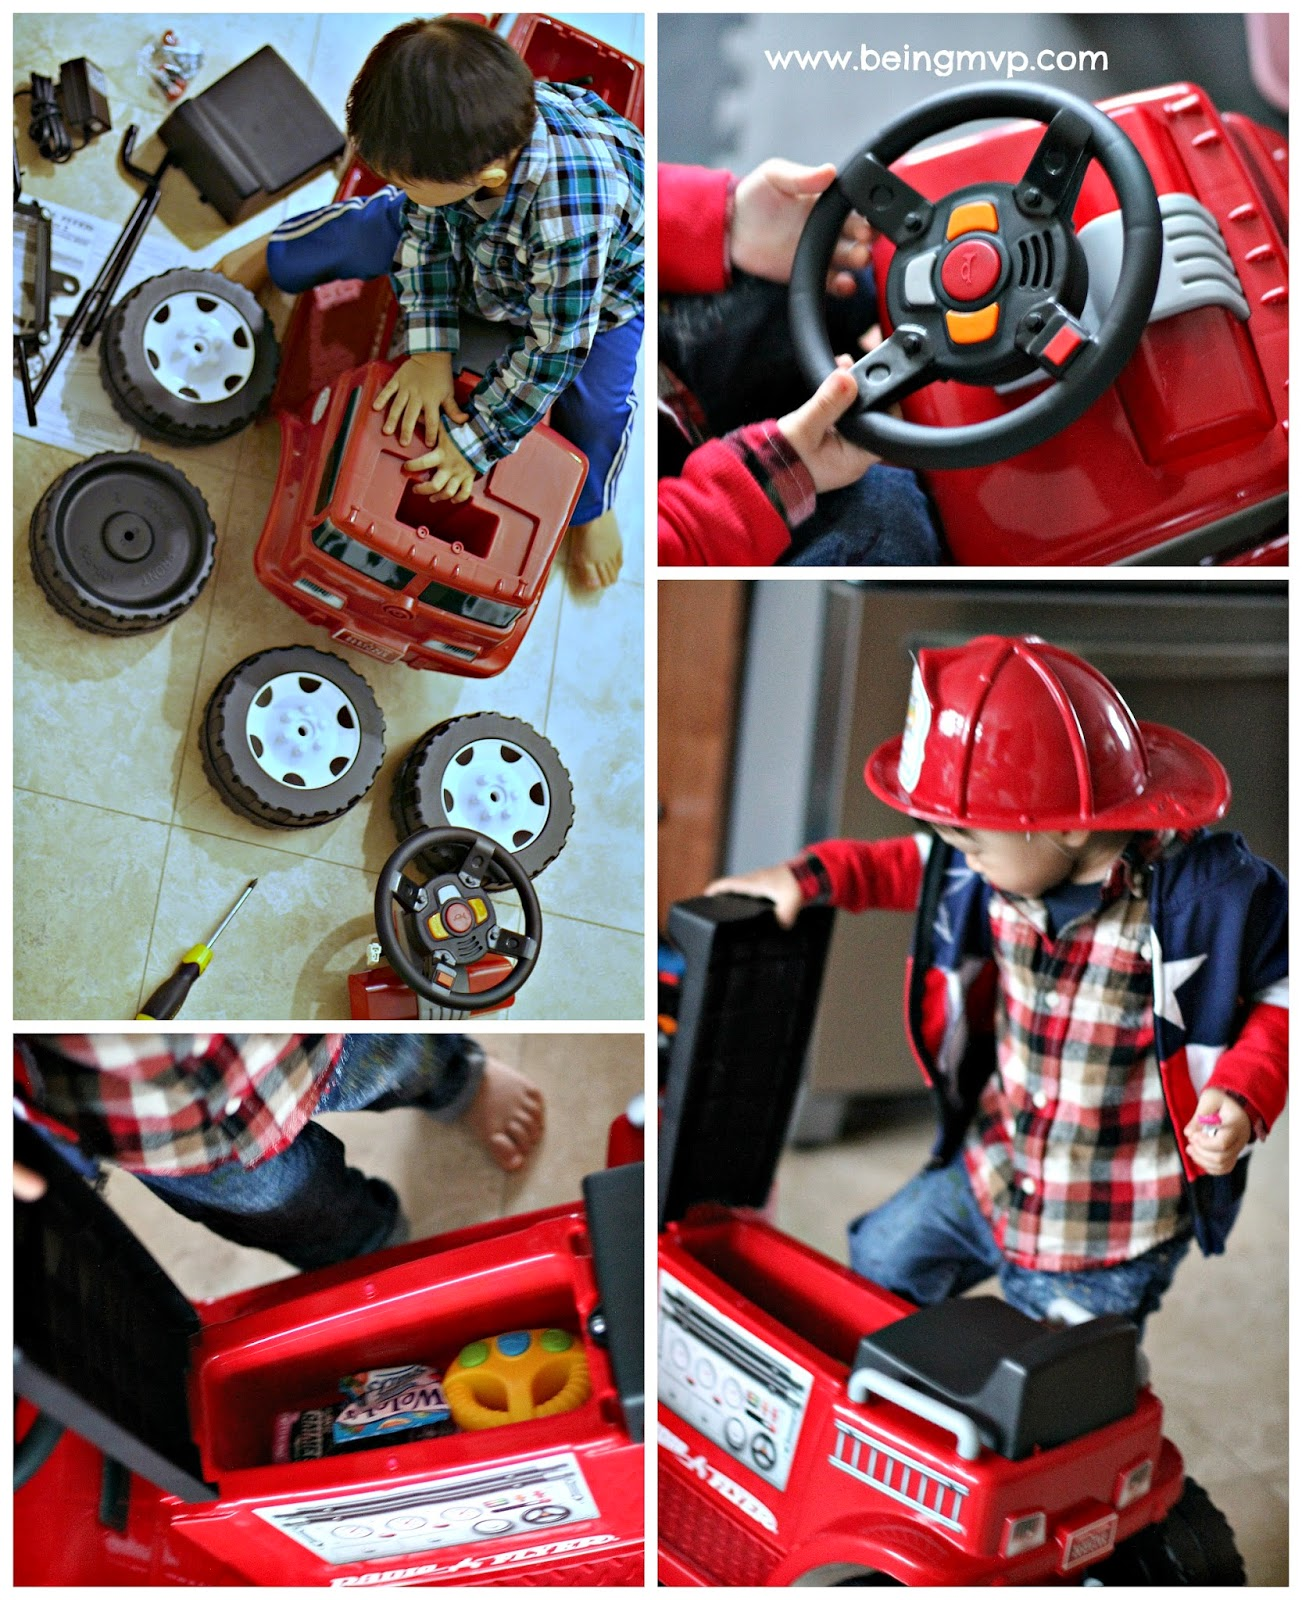 being MVP: Radio Flyer 25 Days of #Giveaways | Battery